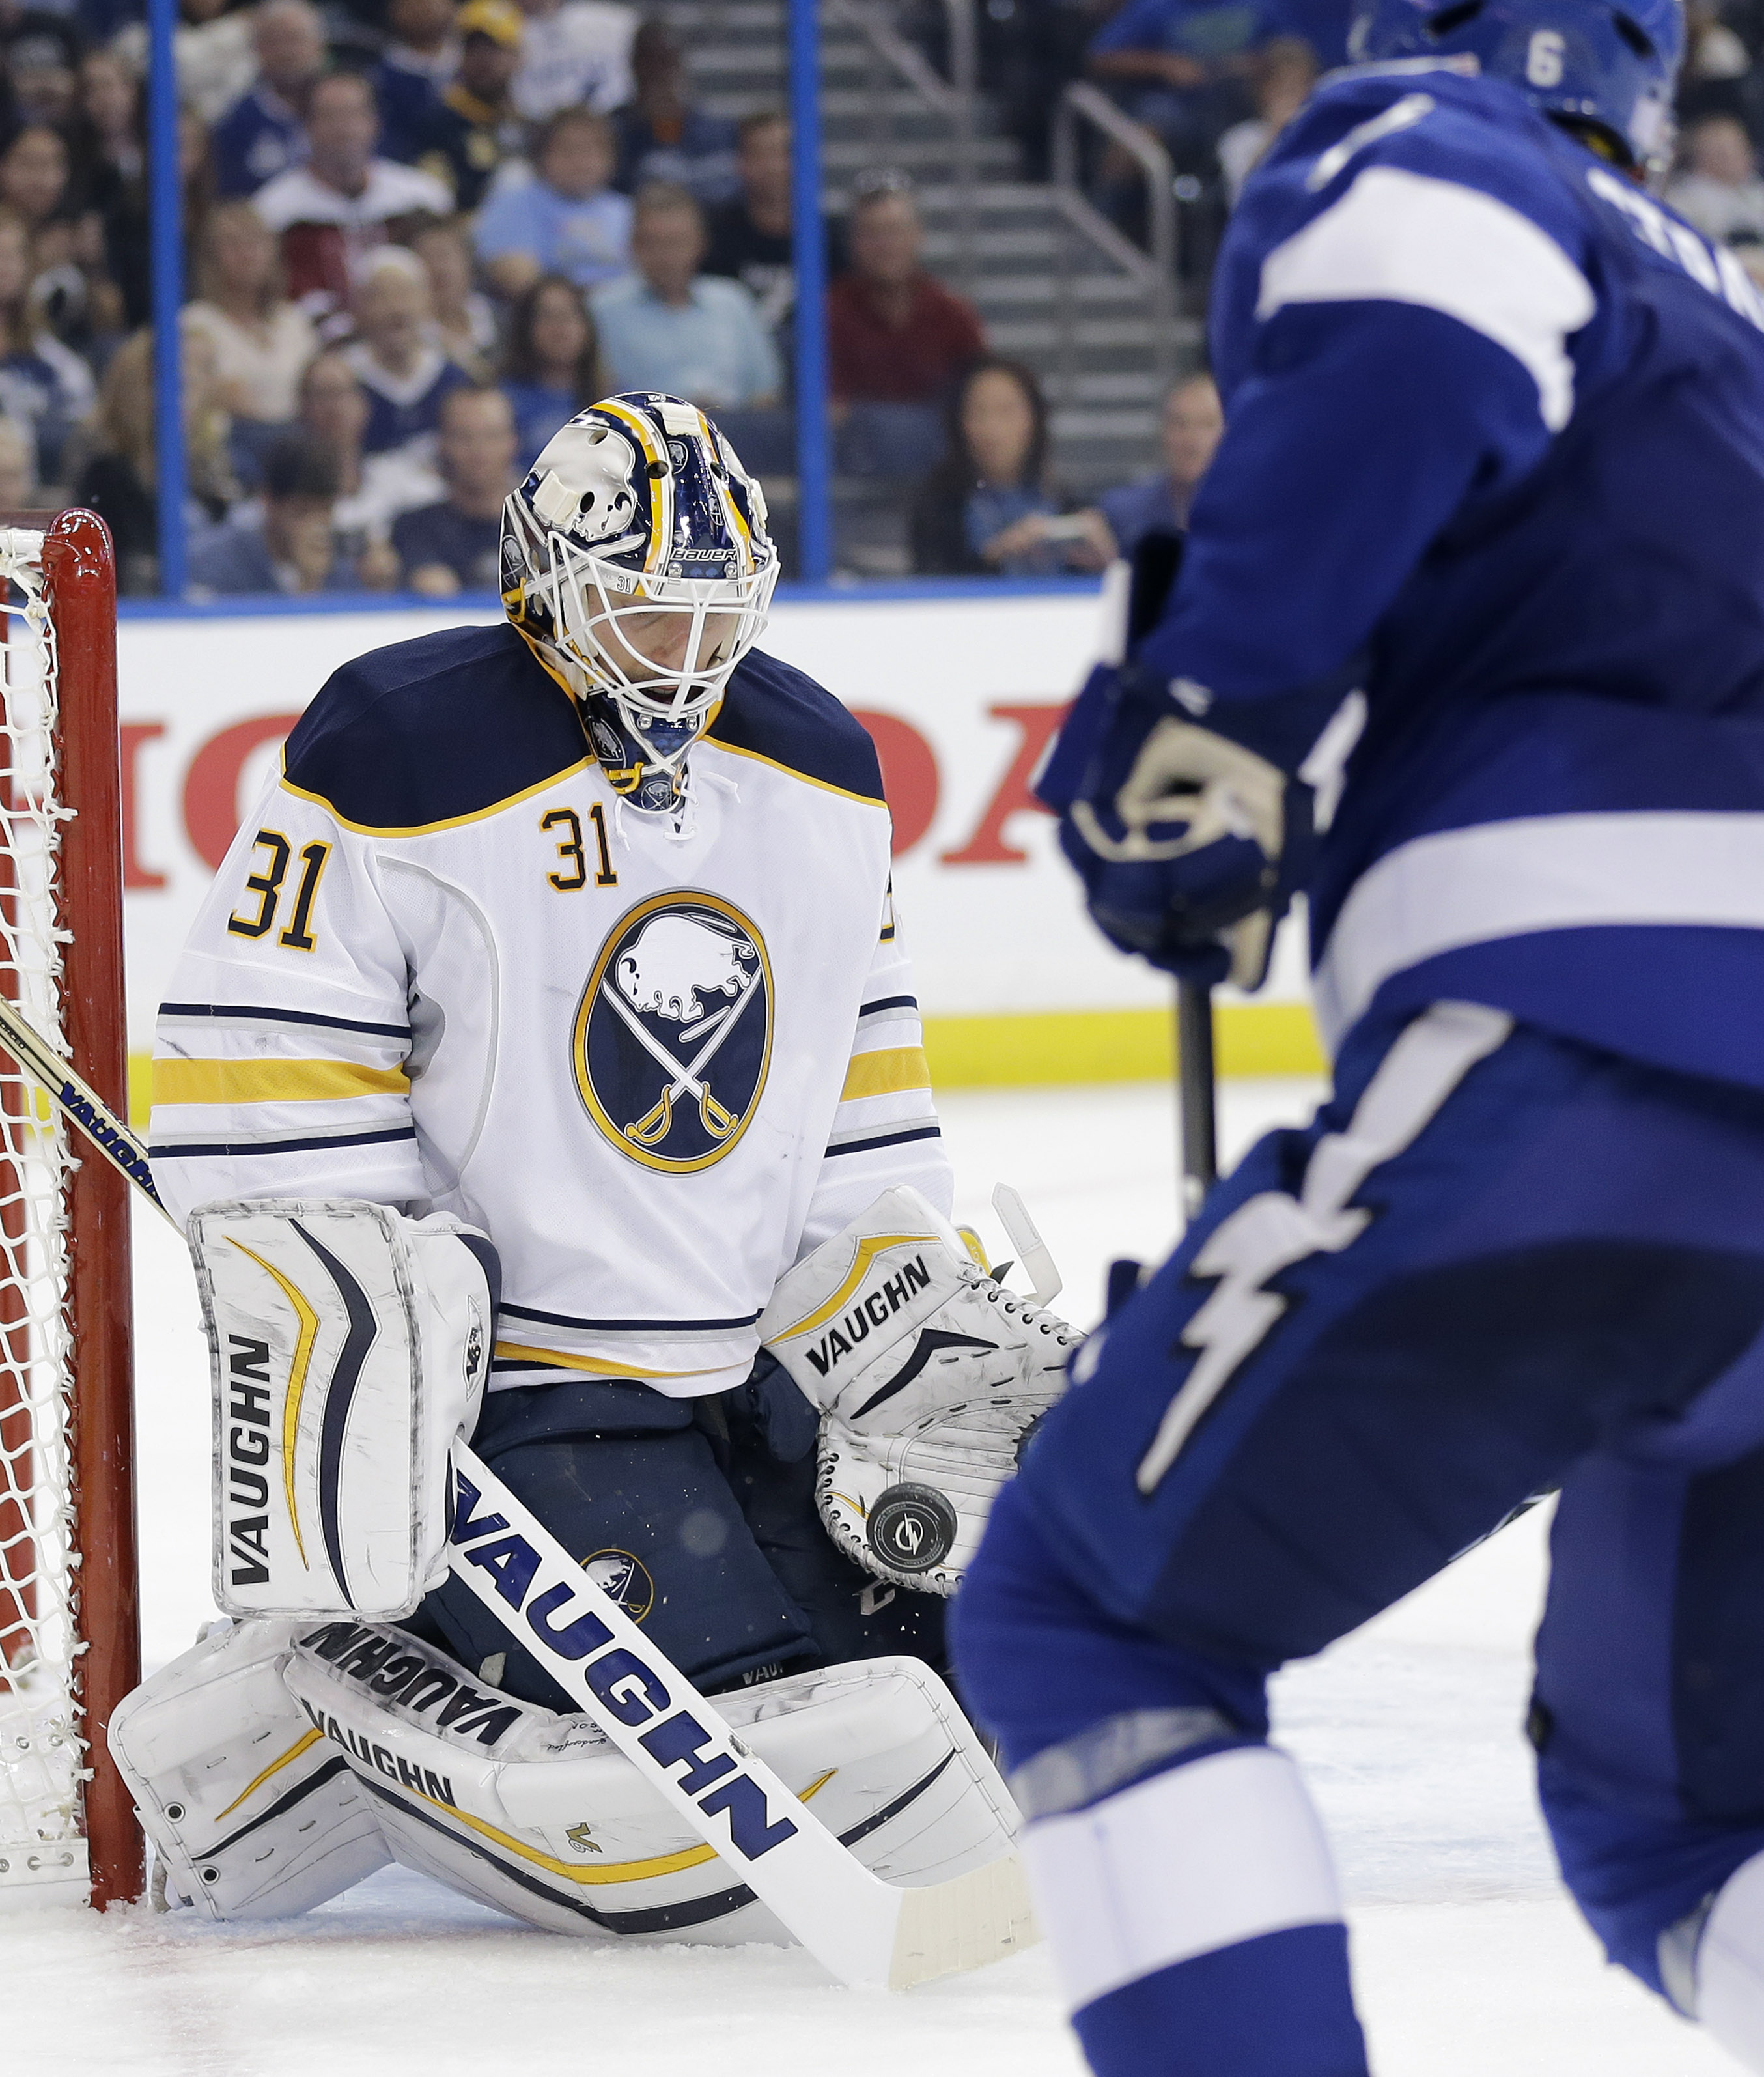 Buffalo Sabres goalie Chad Johnson (31) makes a save on a shot by Tampa Bay Lightning defenseman Anton Stralman during the second period of an NHL hockey game Tuesday, Nov. 10, 2015, in Tampa, Fla. (AP Photo/Chris O'Meara)